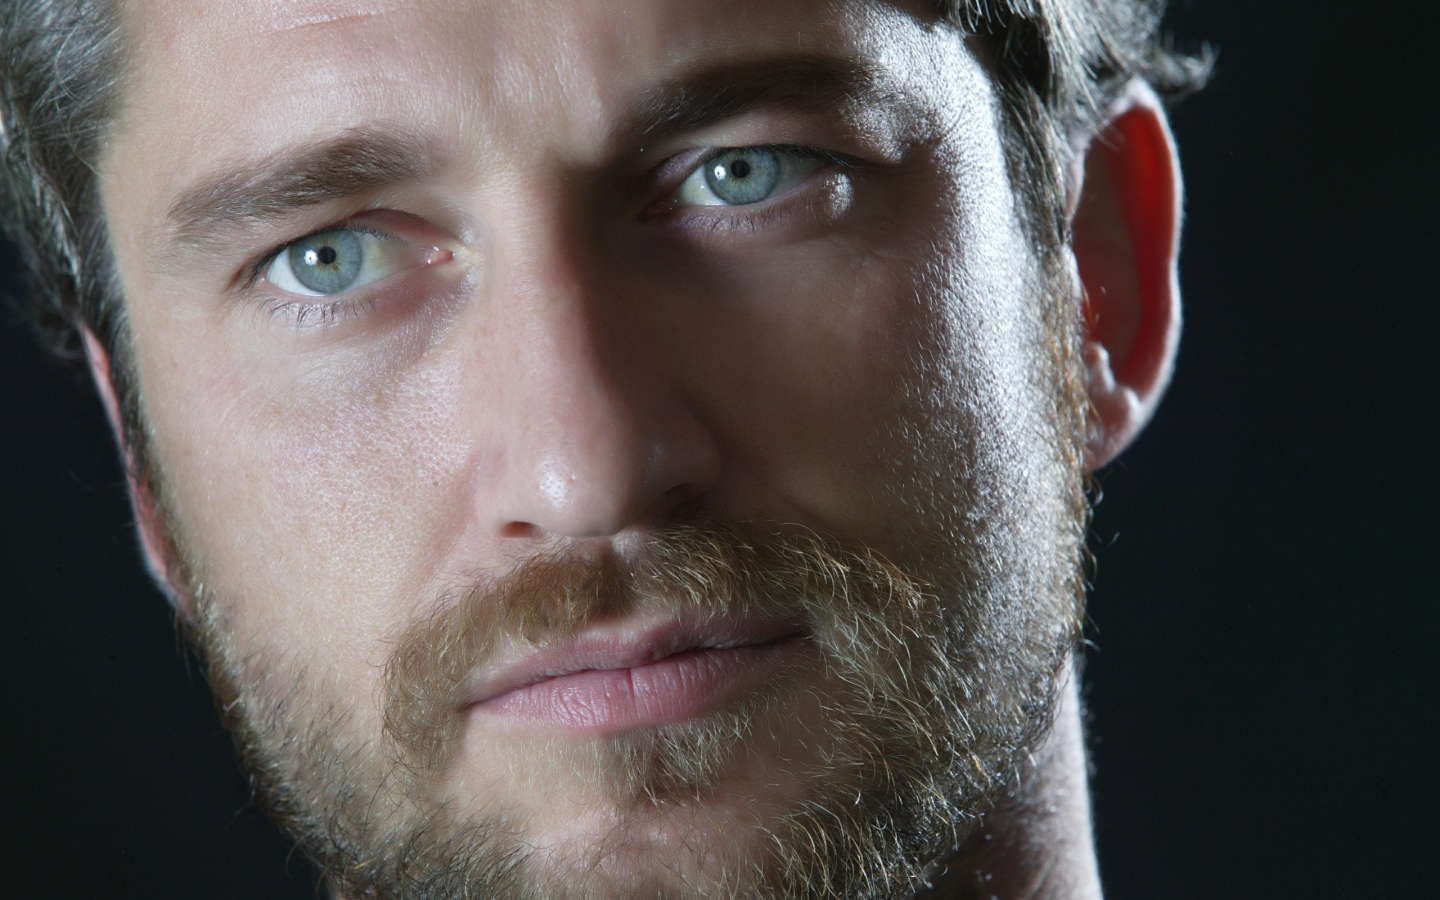 Gerard Butler Close Up for 1440 x 900 widescreen resolution